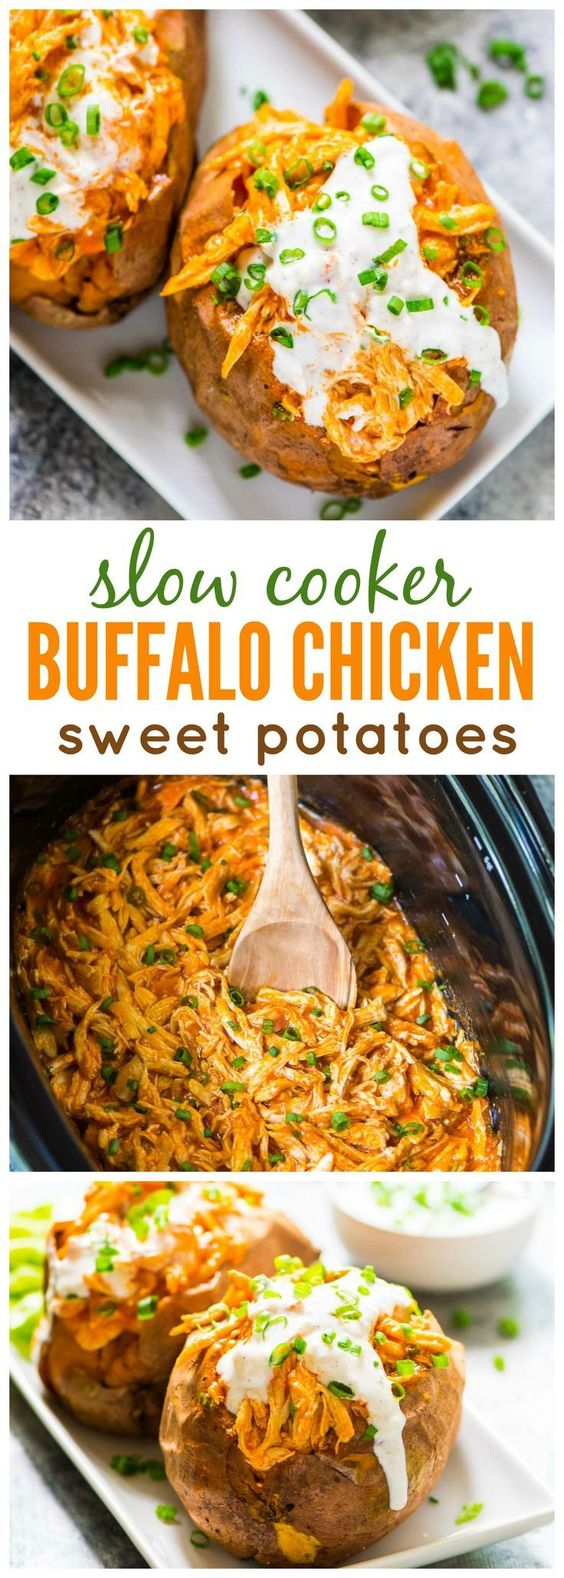 Healthy Slow Cooker Buffalo Chicken Stuffed Sweet Potatoes. Our whole family loves this easy crock pot recipe! Perfect football food for game day and tailgates too. {whole 30, paleo} Recipe at http://wellplated.com | /wellplated/: